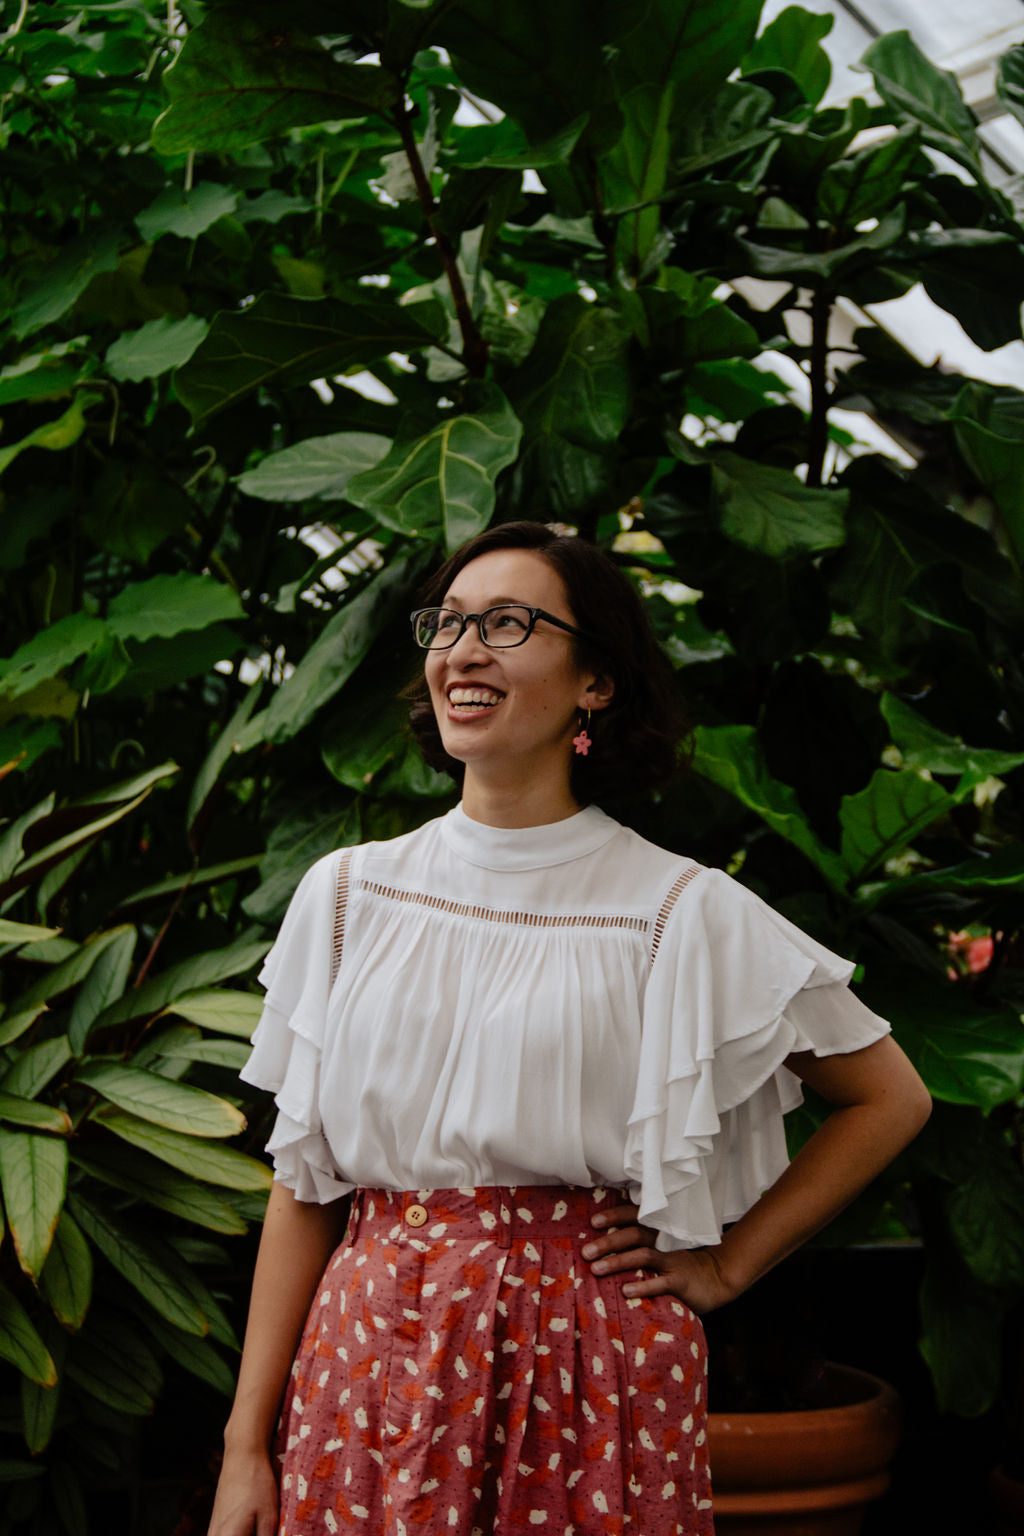 Cass amongst foliage in a green house. She is smiling with a hand on her hip, and looking away from the camera. She is wearing a floaty elbow length top, and a confetti patterned red/pink skirt.